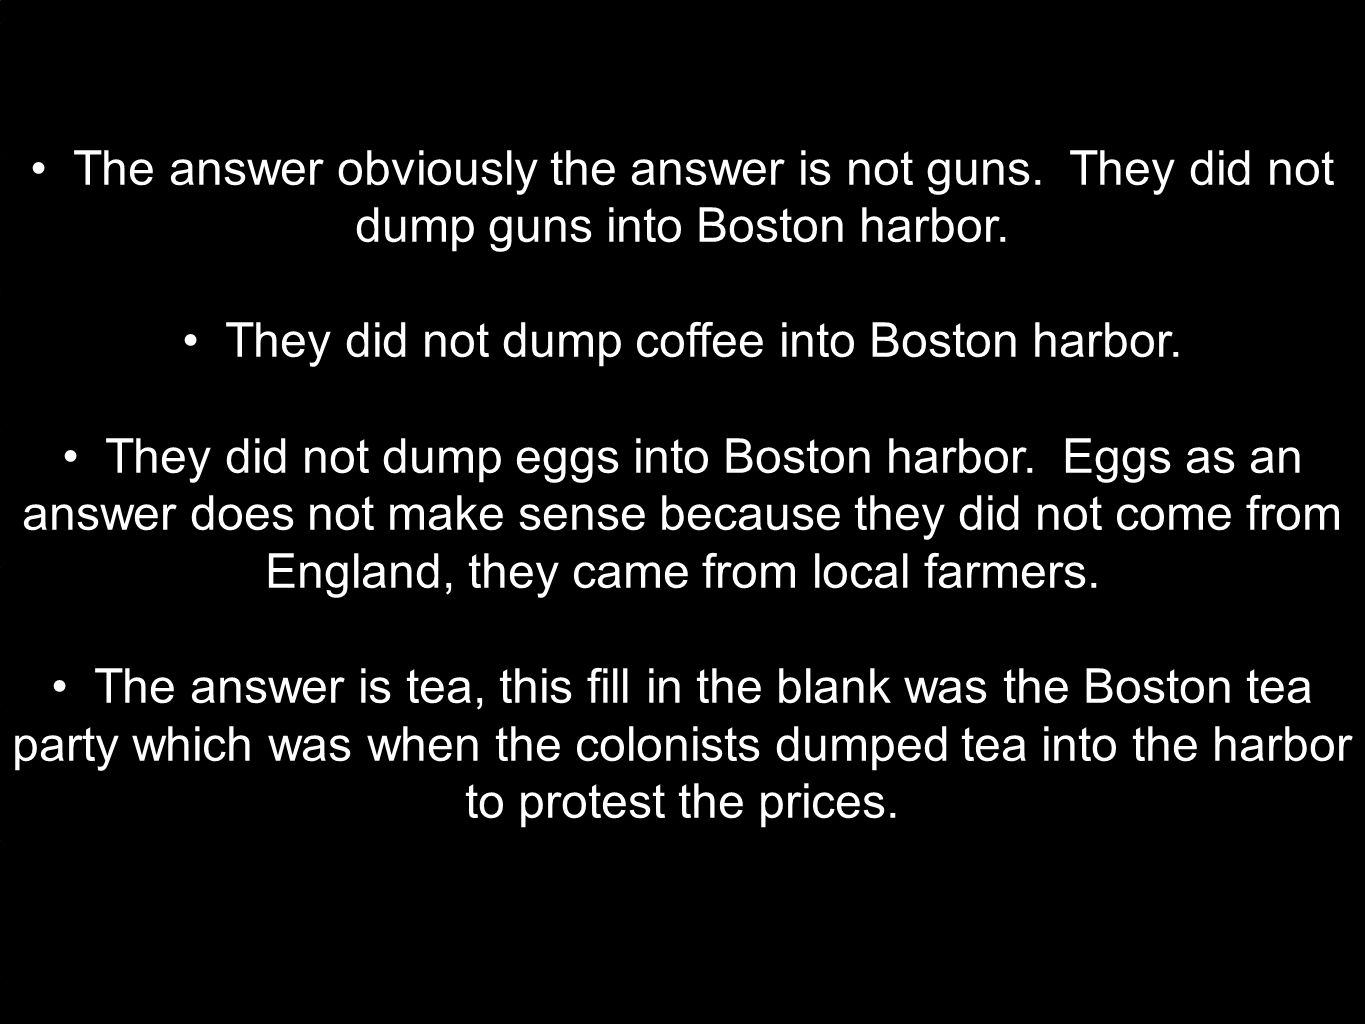 The answer obviously the answer is not guns. They did not dump guns into Boston harbor.